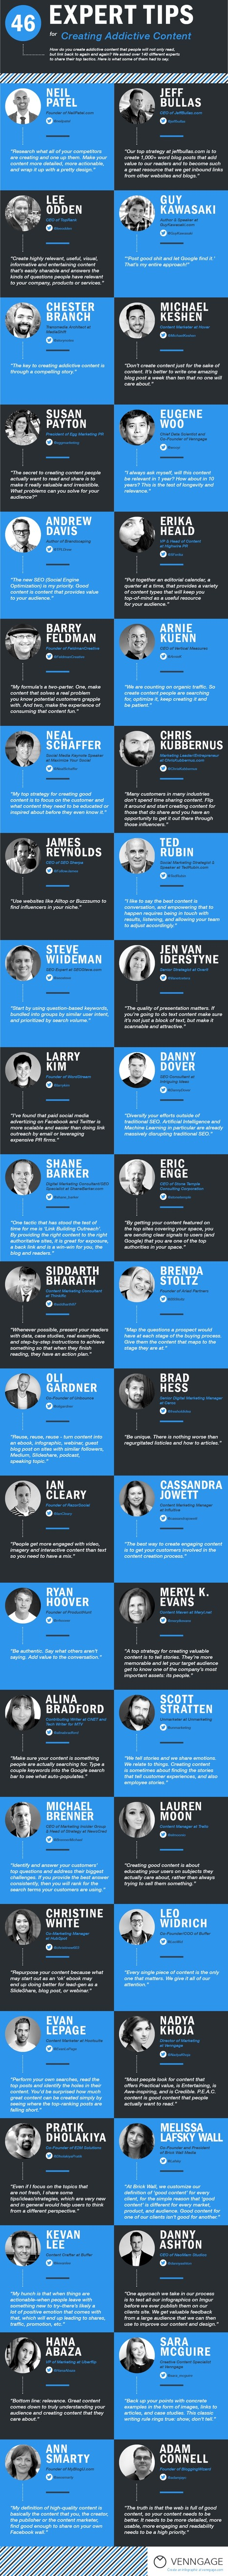 How to Create Shareable Content: 46 Tips From the Experts #Infographic | Great Infographics | Scoop.it